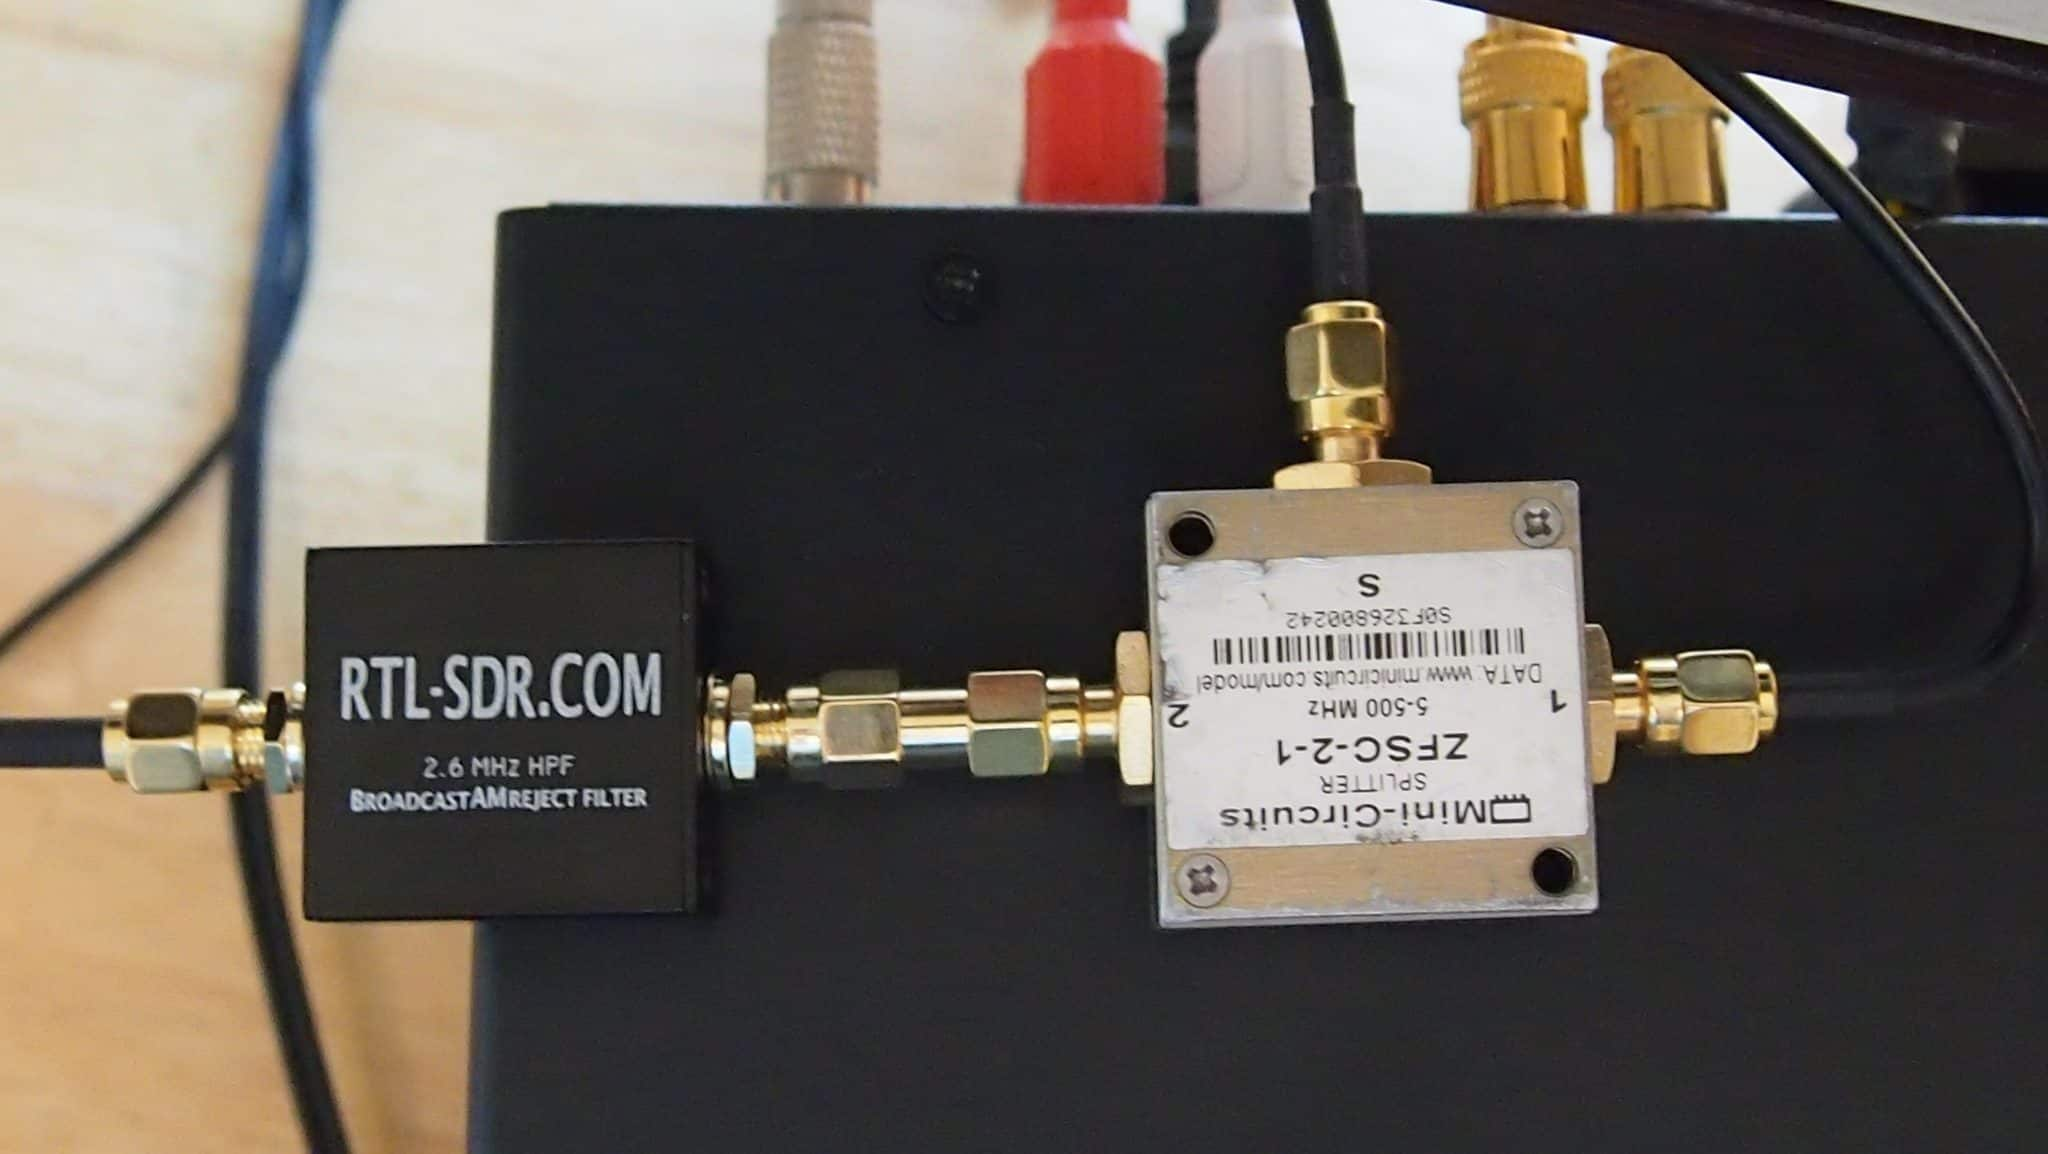 Icom 7300 Panadapter With DXPatrol, Mini Circuits Splitter